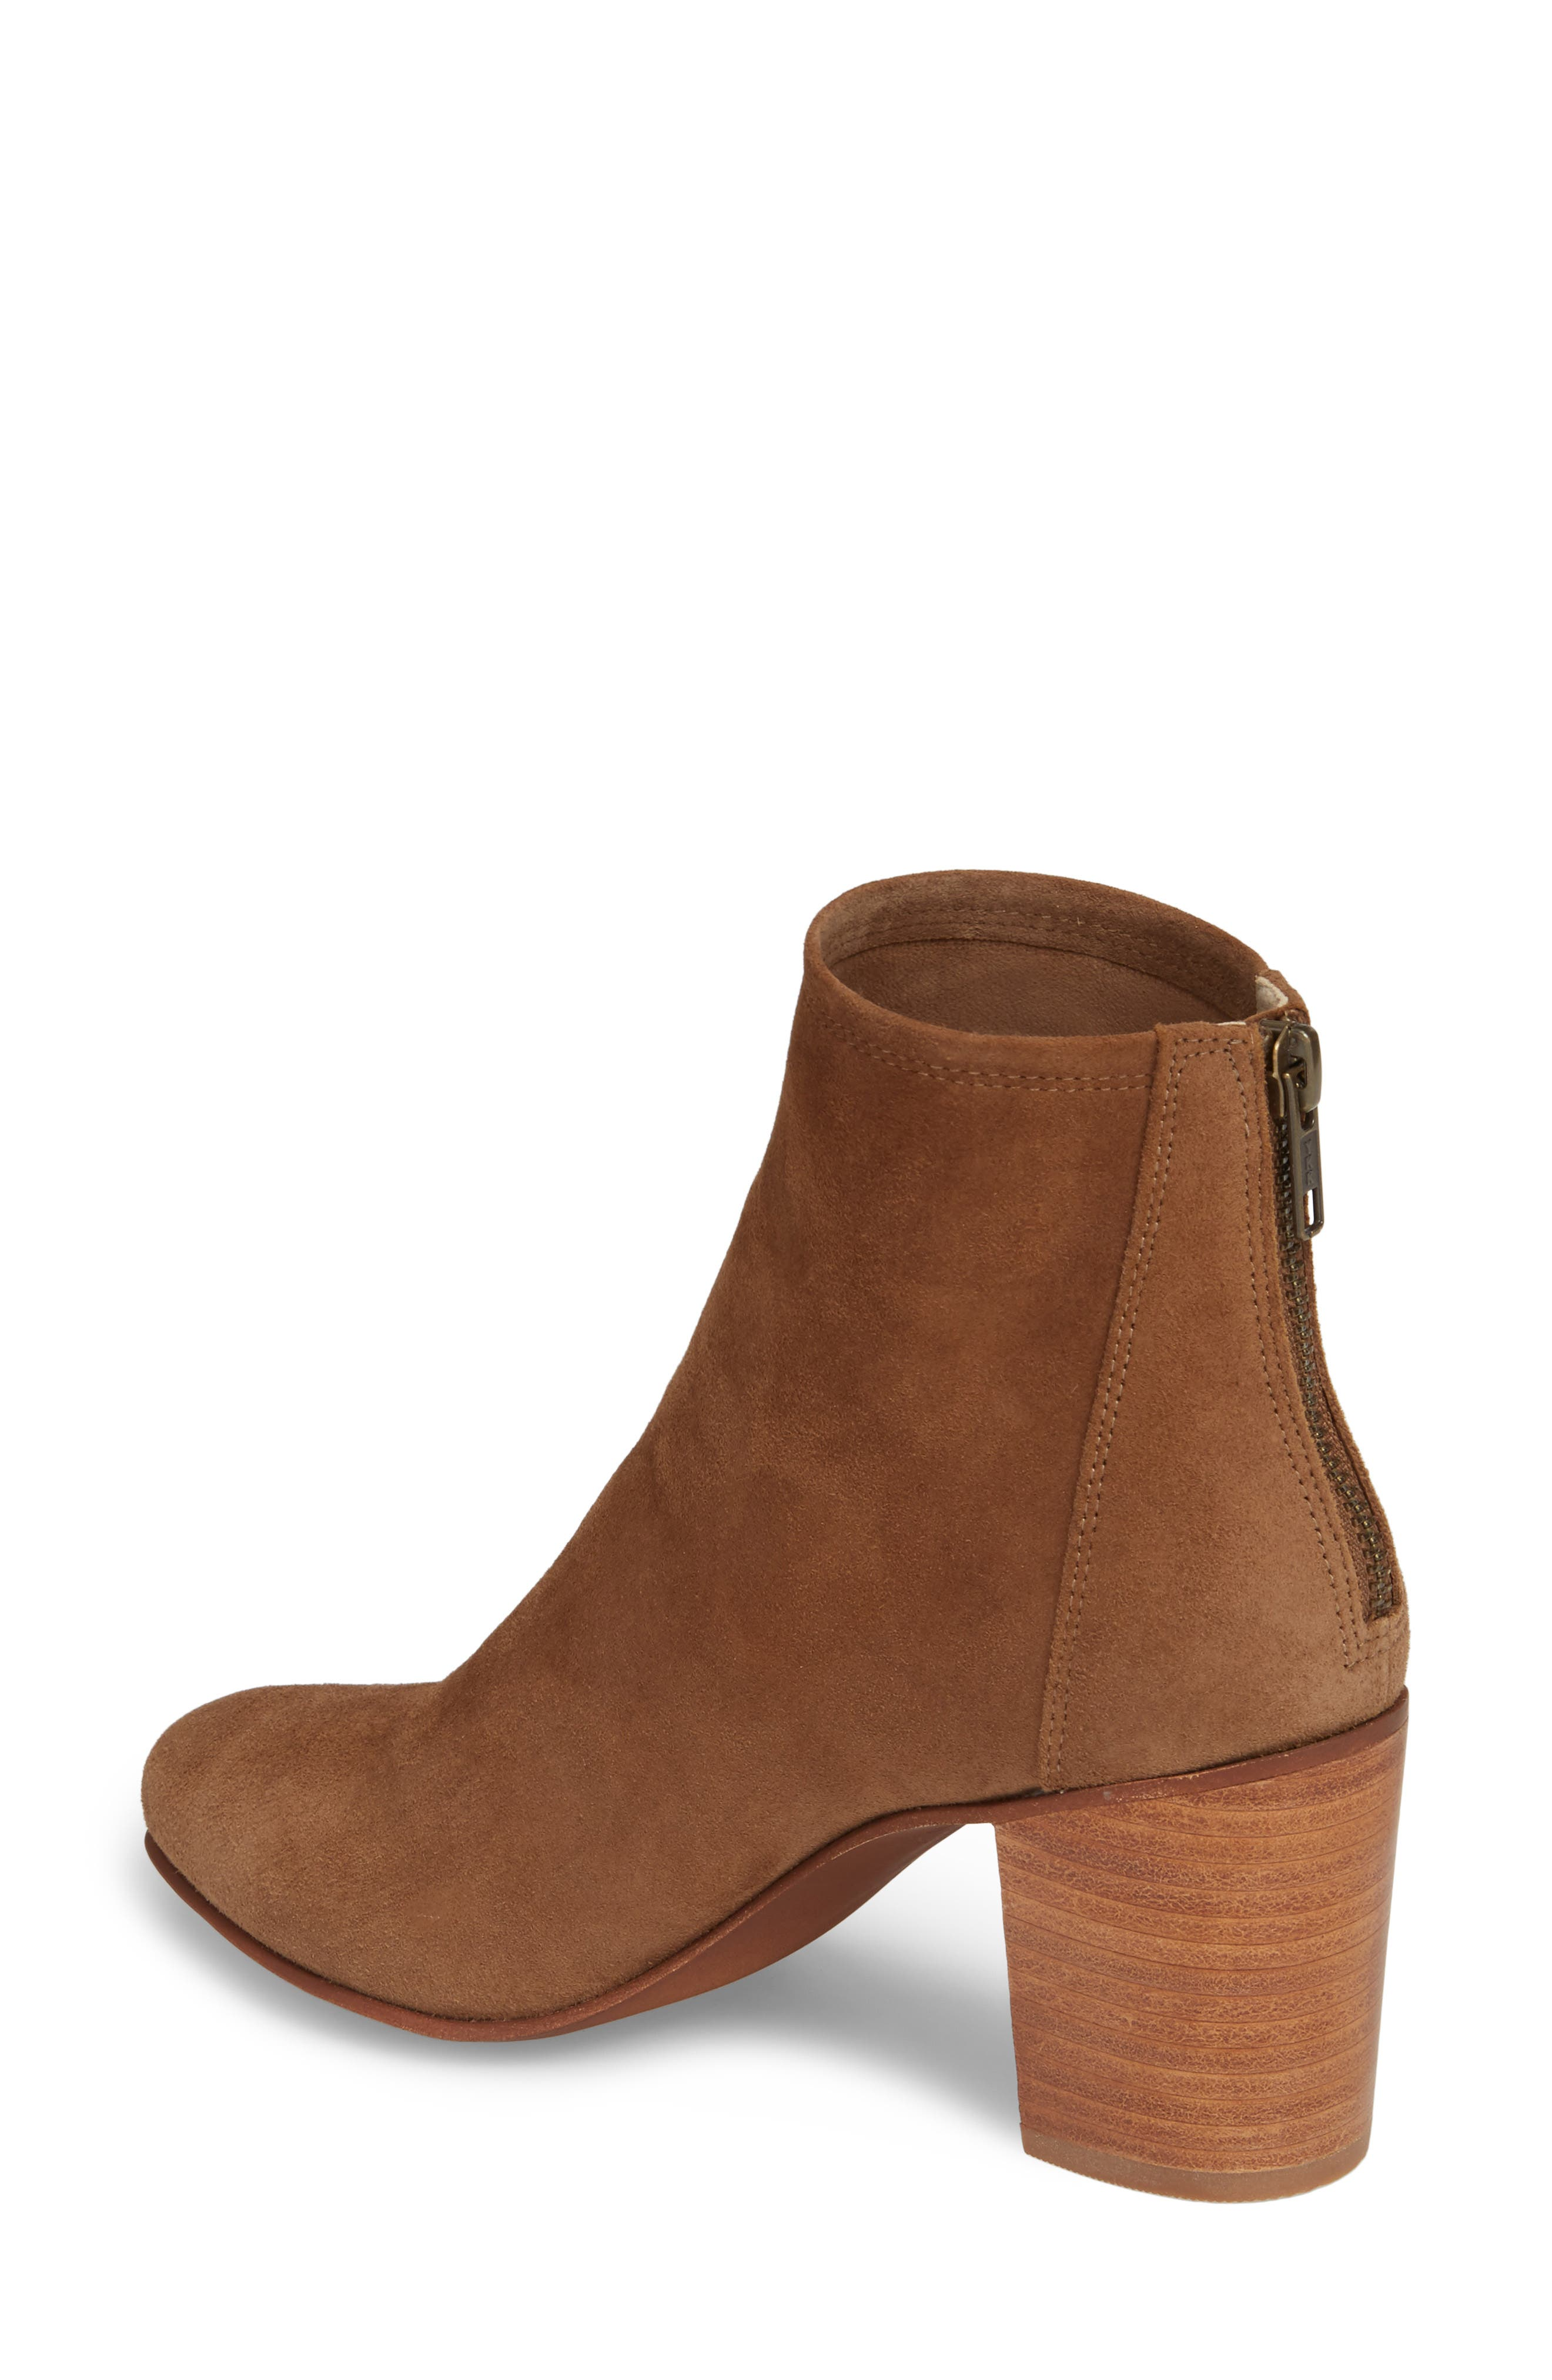 Tawny Bootie,                             Alternate thumbnail 2, color,                             Khaki Suede